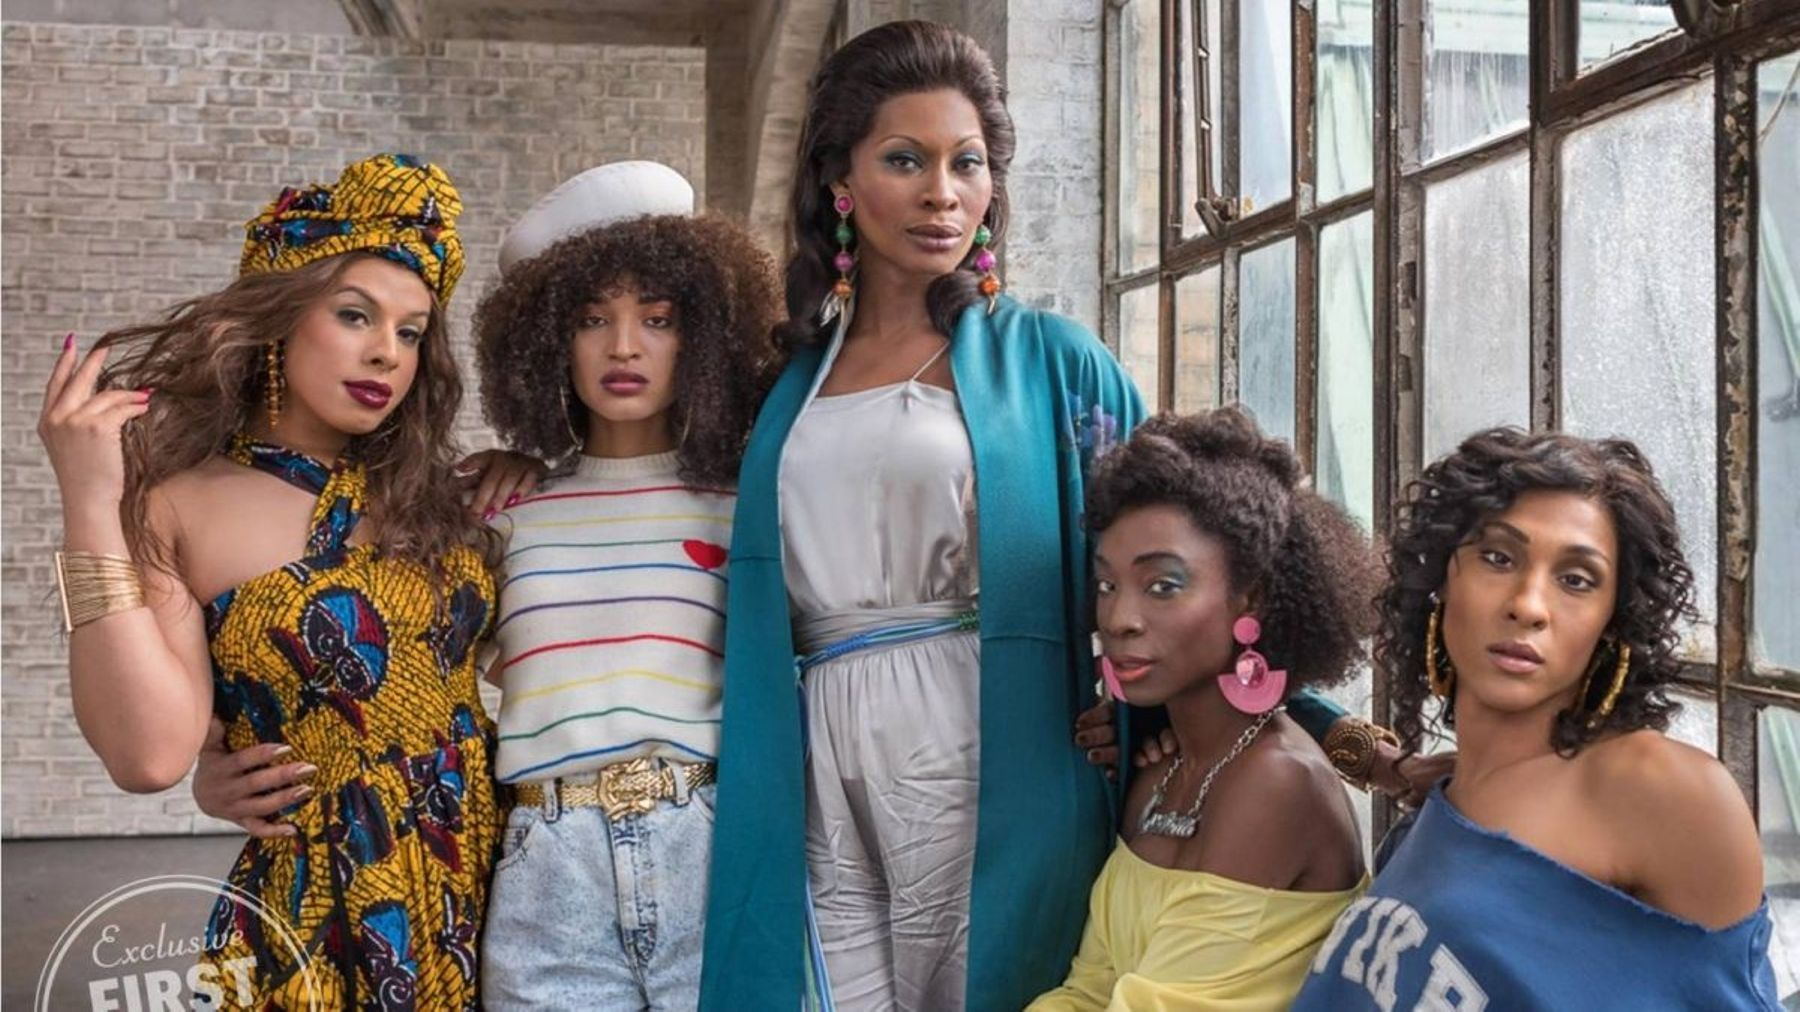 Ryan Murphy's New Dance Musical 'Pose' Gets Series Order at FX!